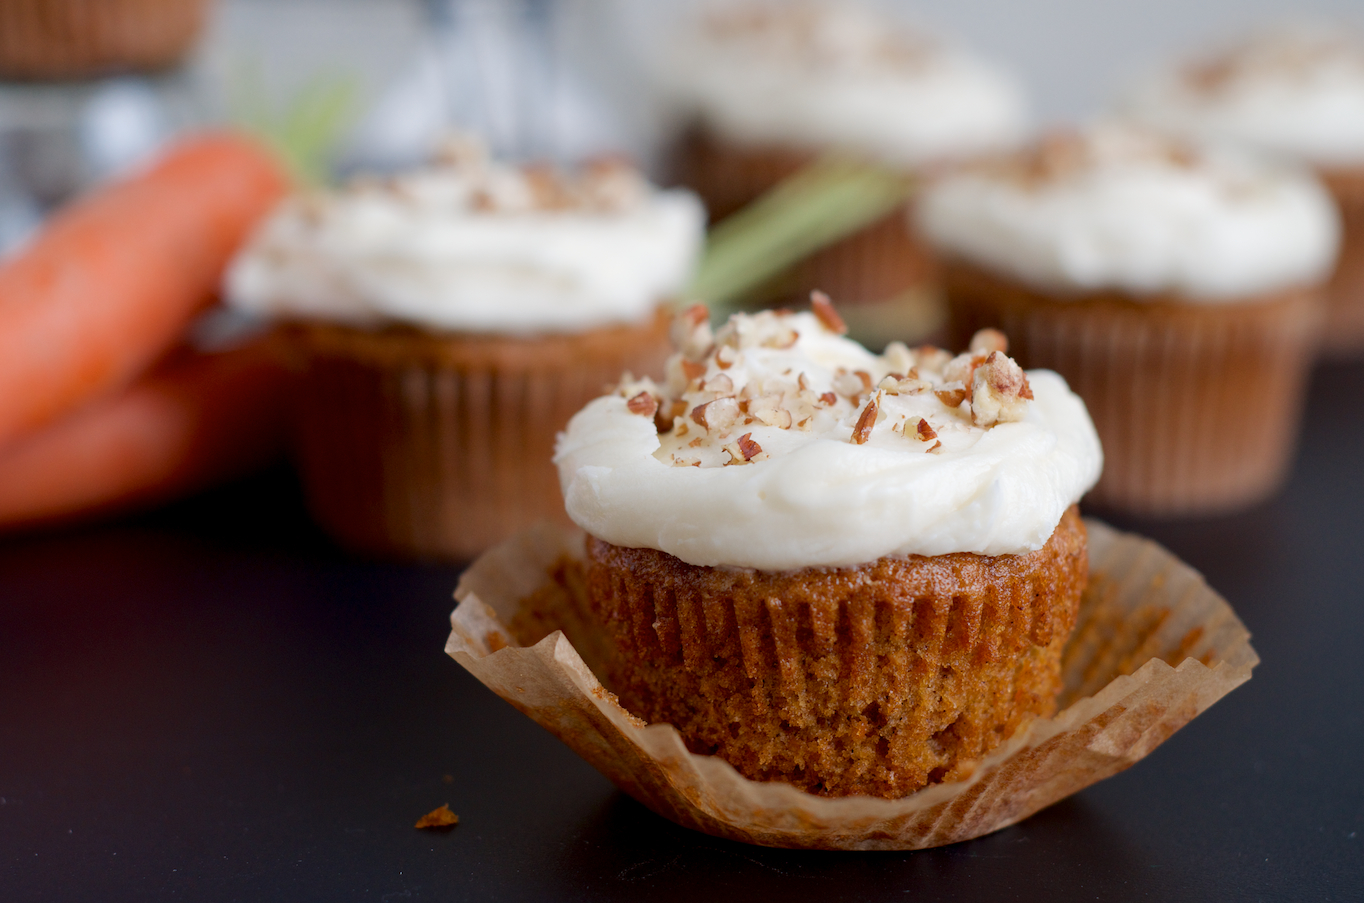 Carrot Cake Cupcakes with Cream Cheese Frosting | Heather homemade